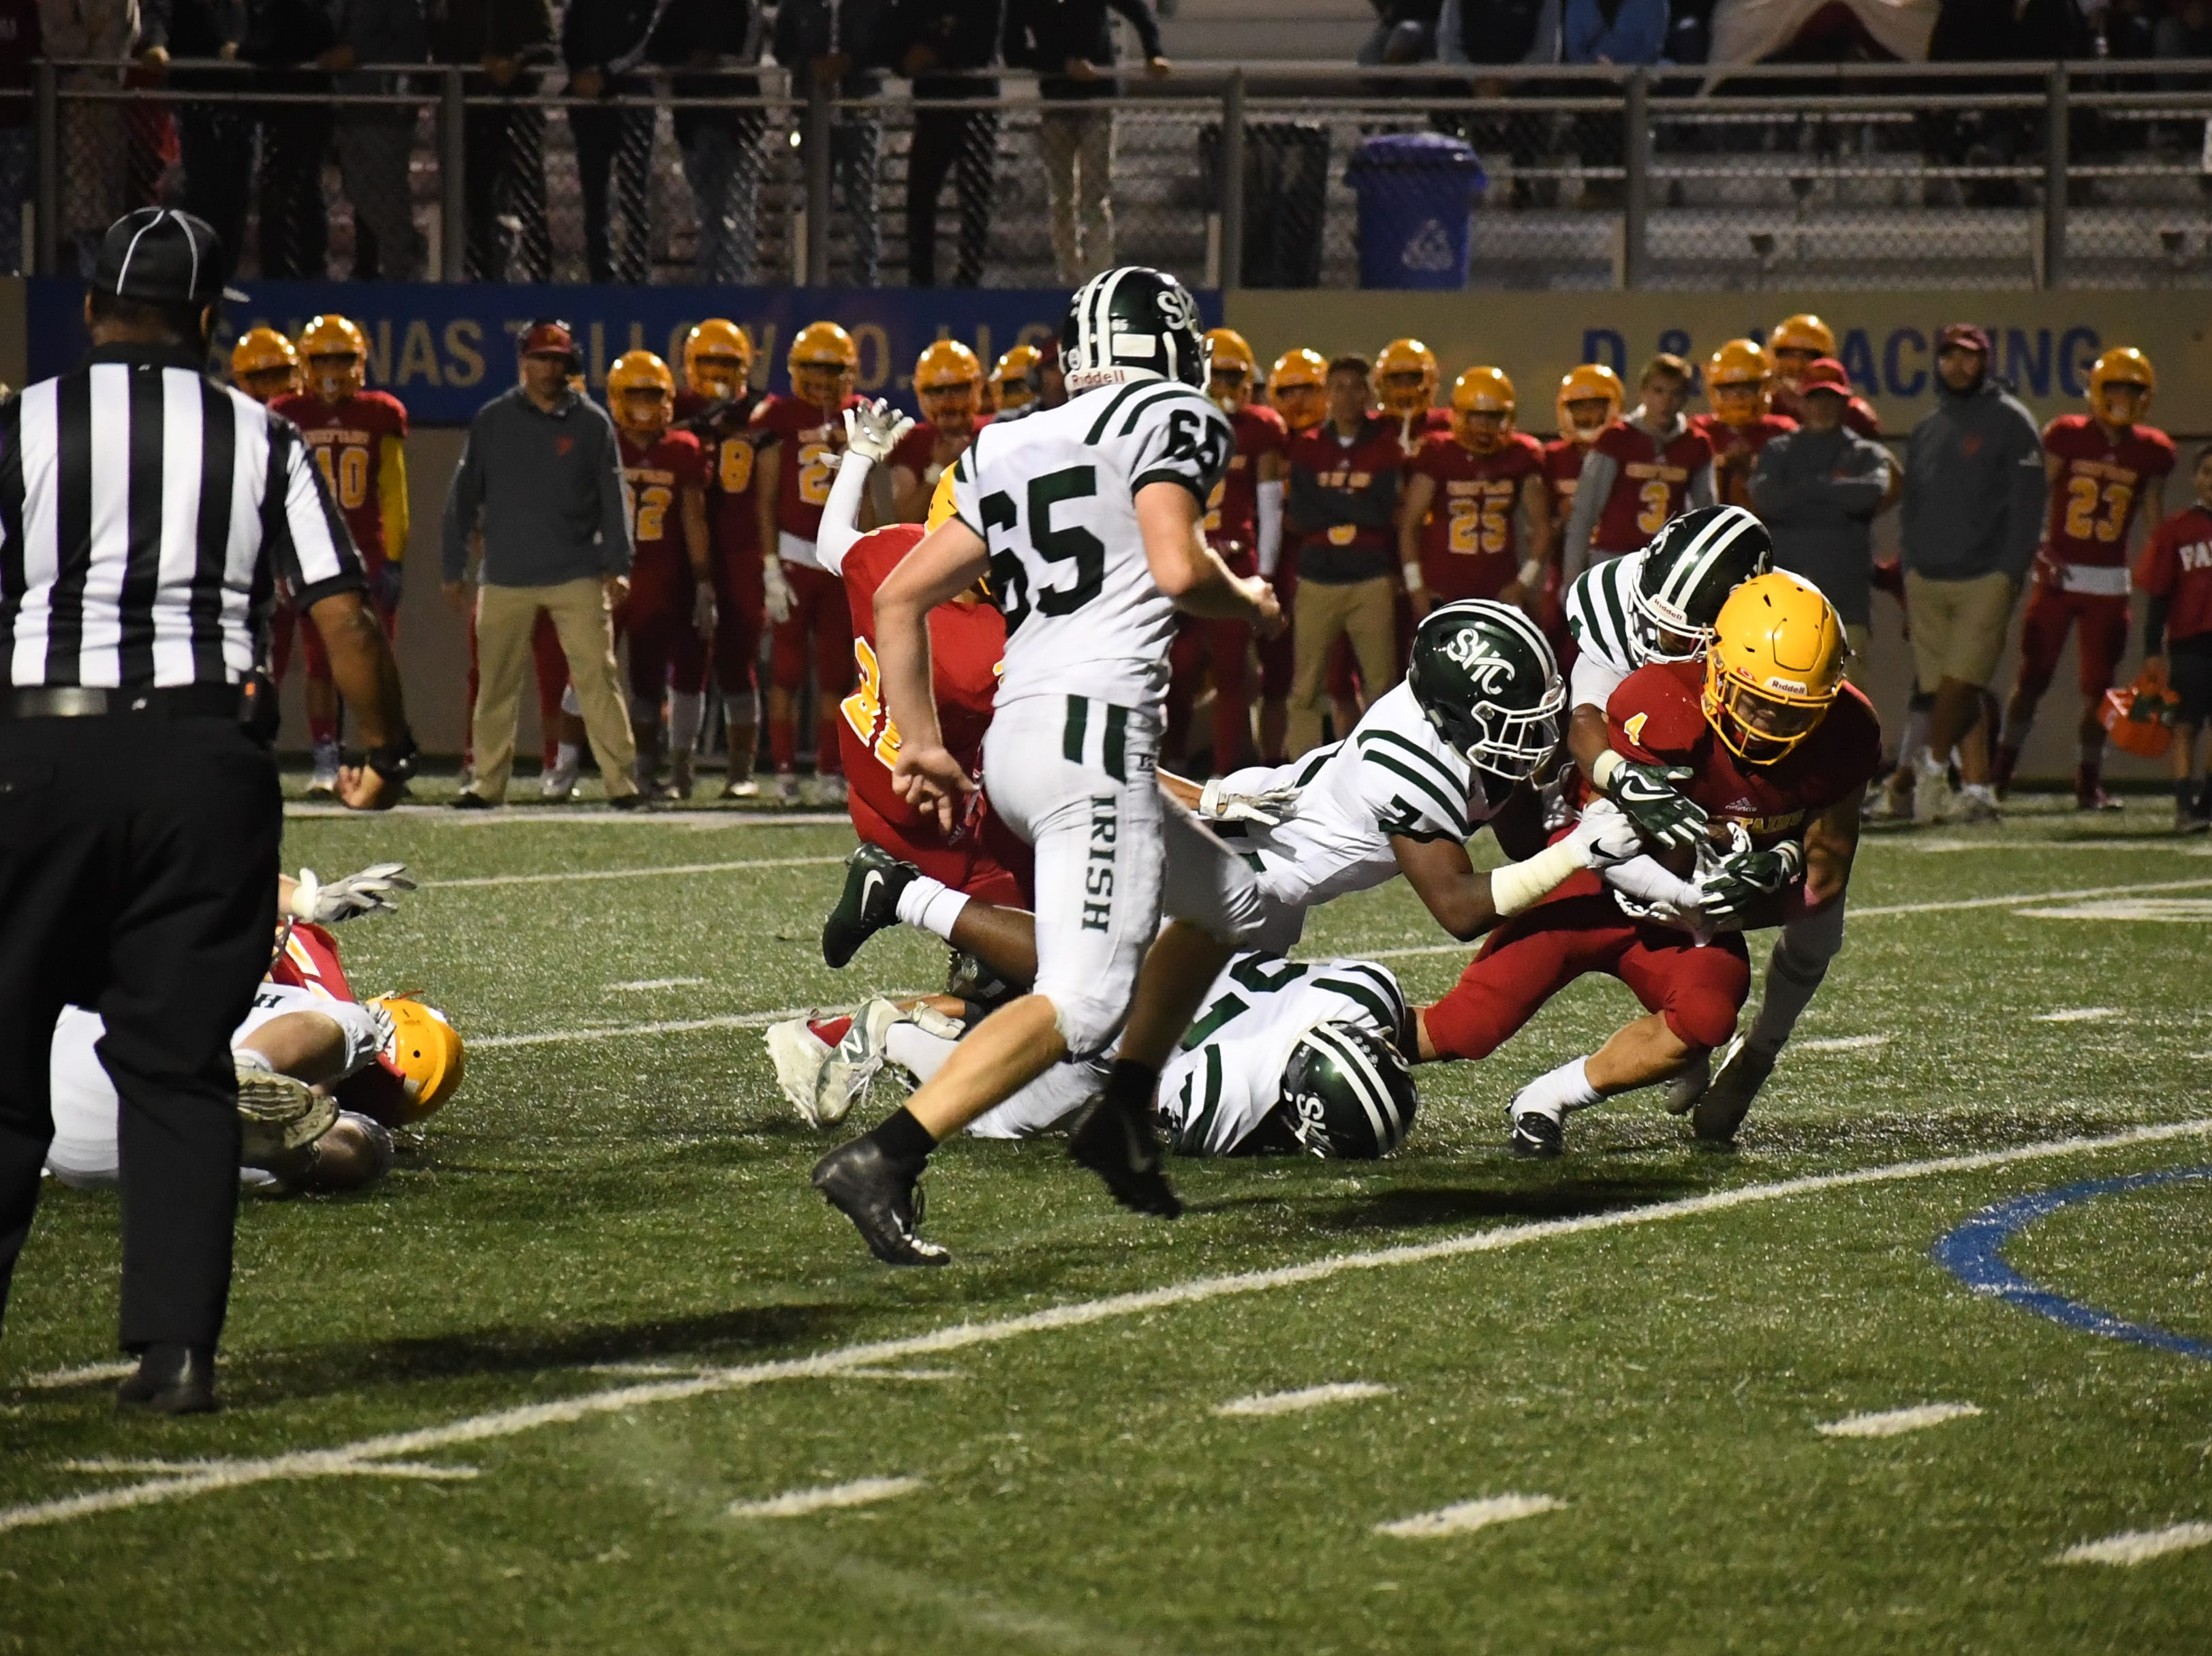 Palma running back Anthony Villegas (4) fights for extra yards against the Sacred Heart Cathedral defense.